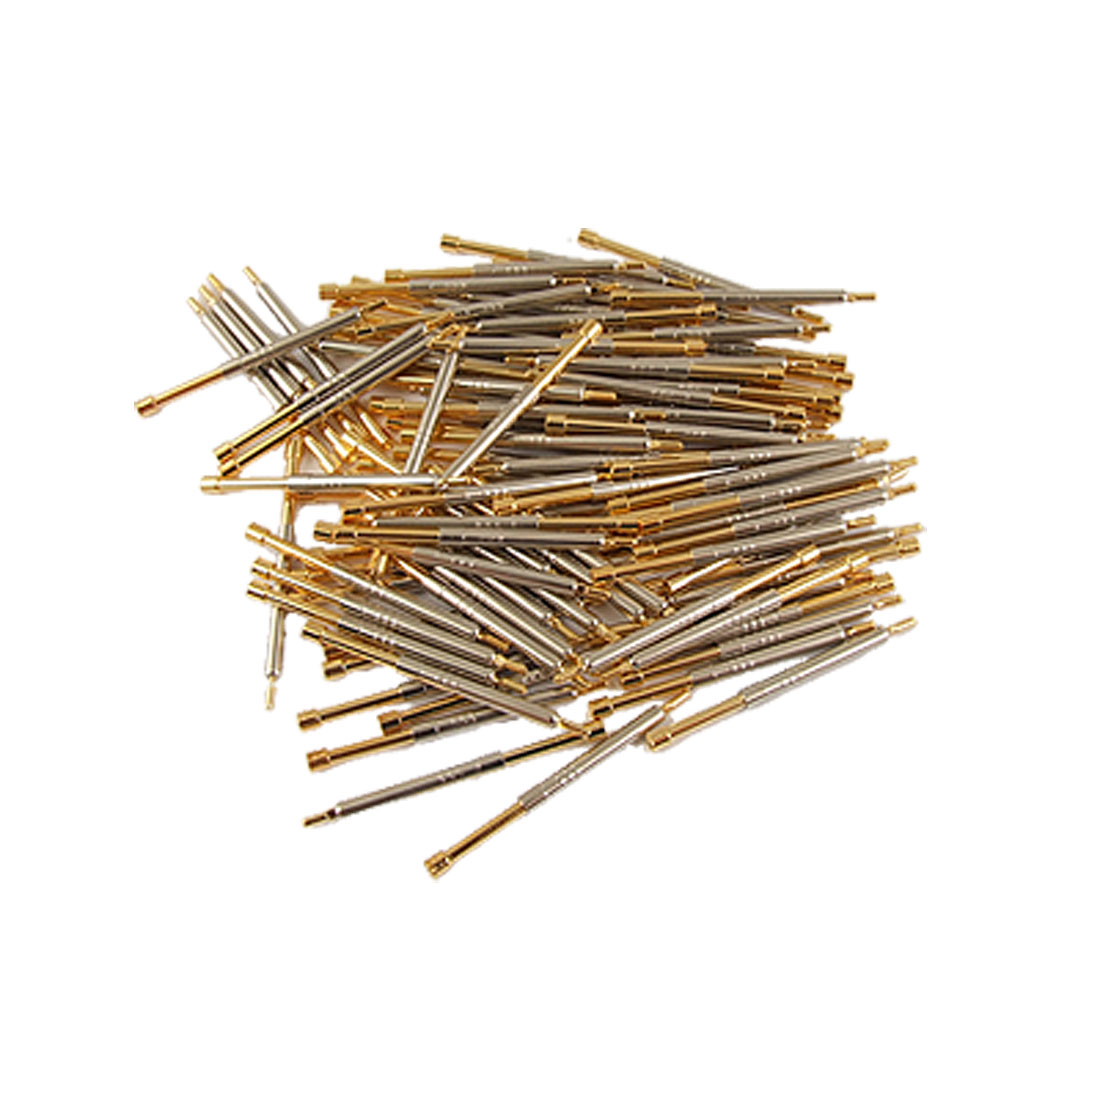 CSP-4A Concave Tipped Spring Test Probes Pin 100 Pcs